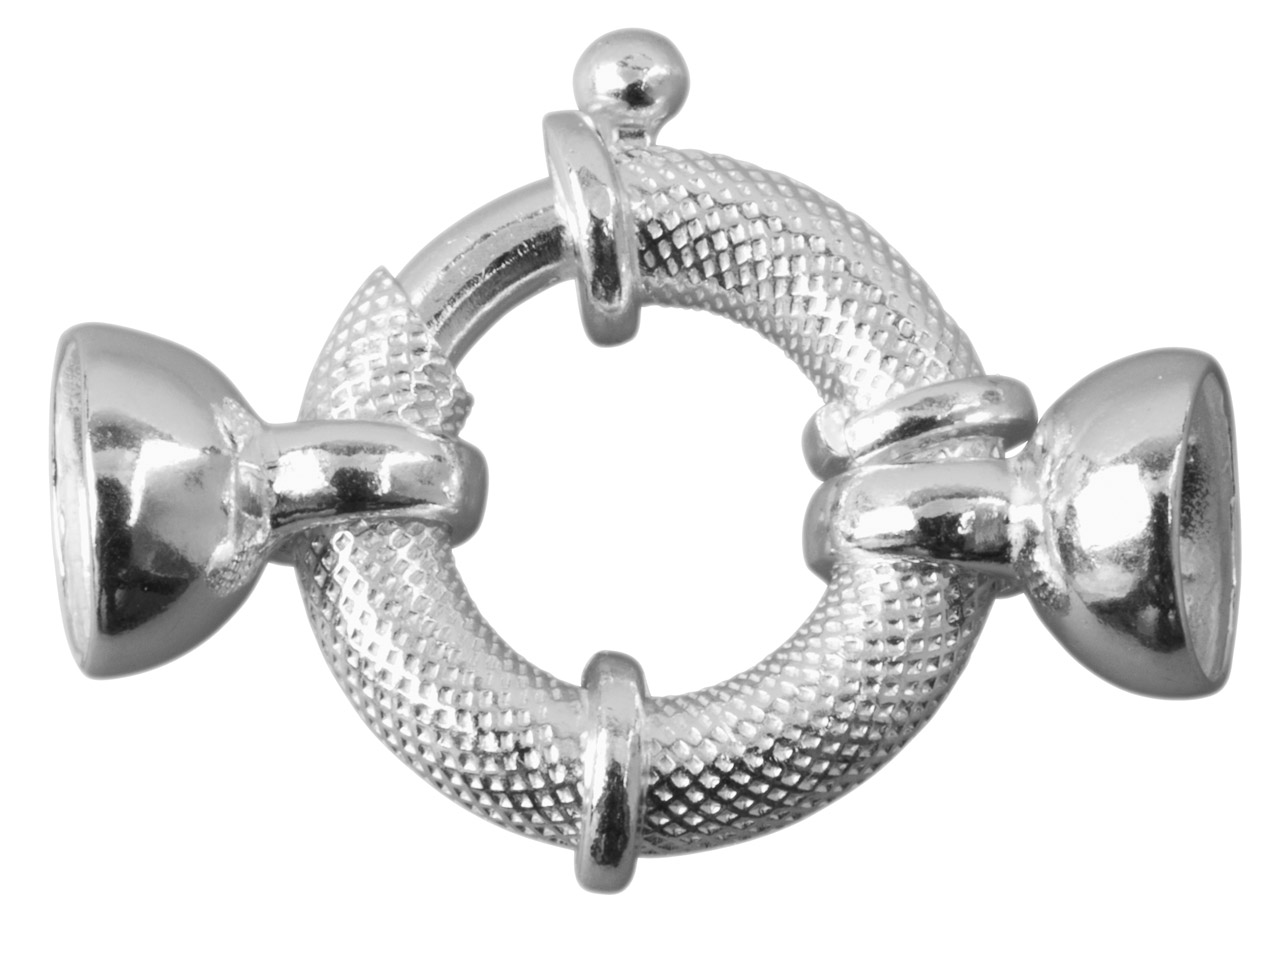 Sterling Silver Jumbo Bolt Ring    18mm Od, With 2 Round Caps And     Internal Bar Textured Finish